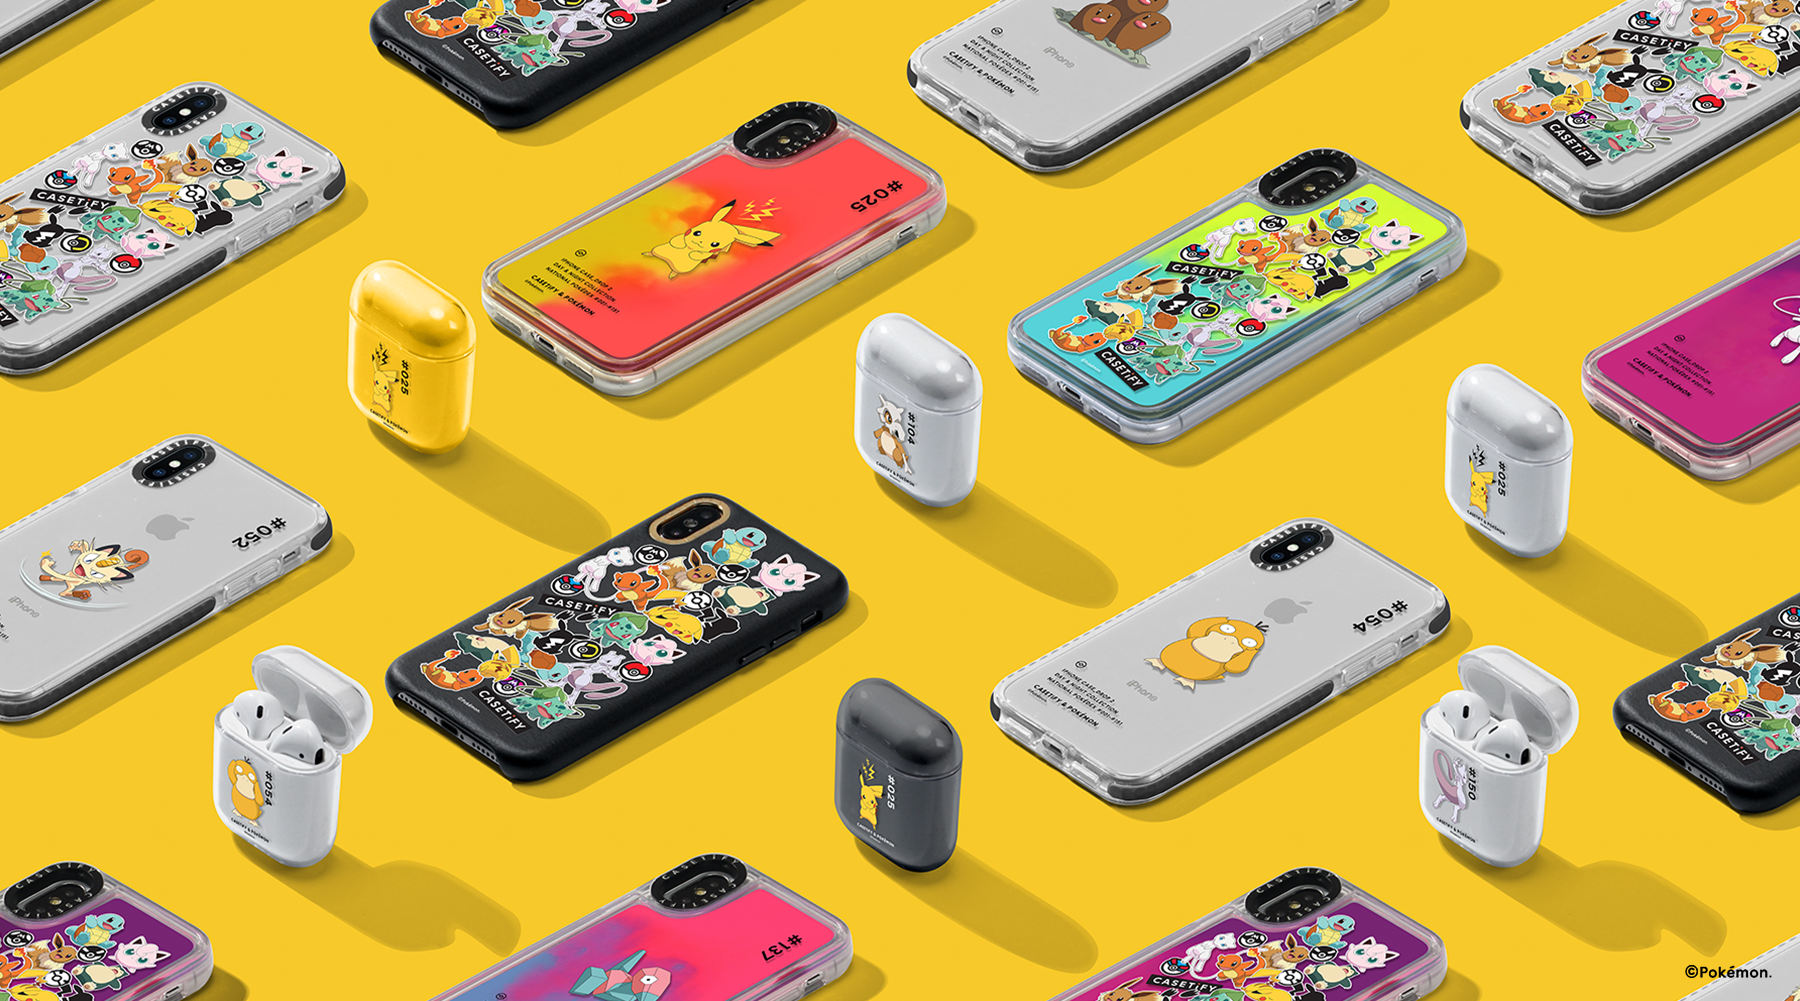 All 151 original Pokémon get their own phone case designs in Casetify's second drop